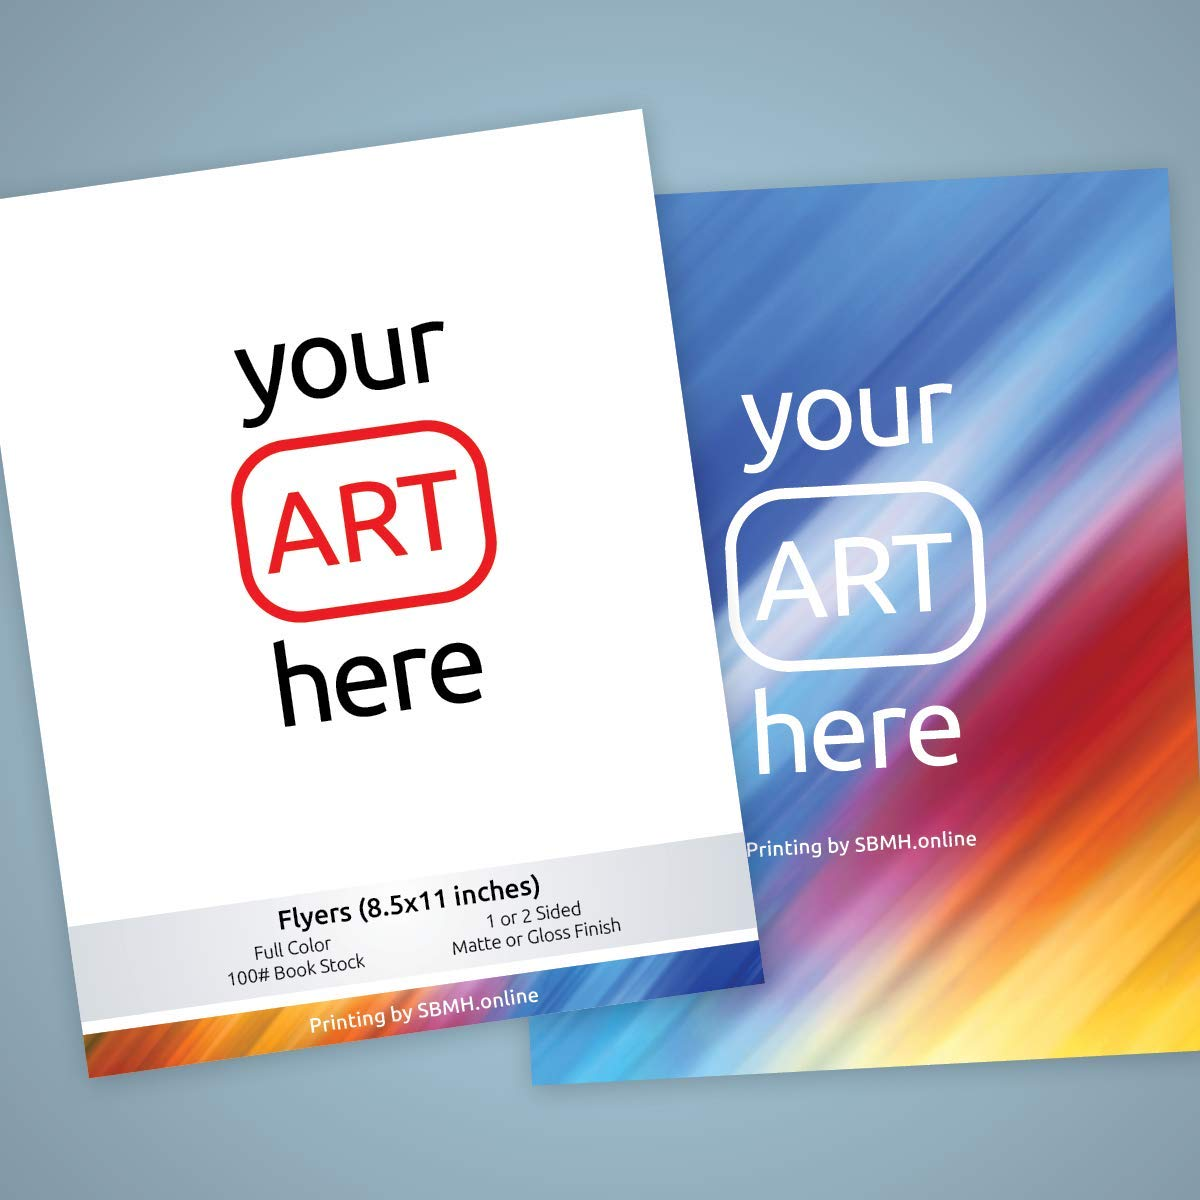 Flyer Printing - You supply the art and we'll print it for you! (500) by Sebastian Branding | Marketing | Hosting